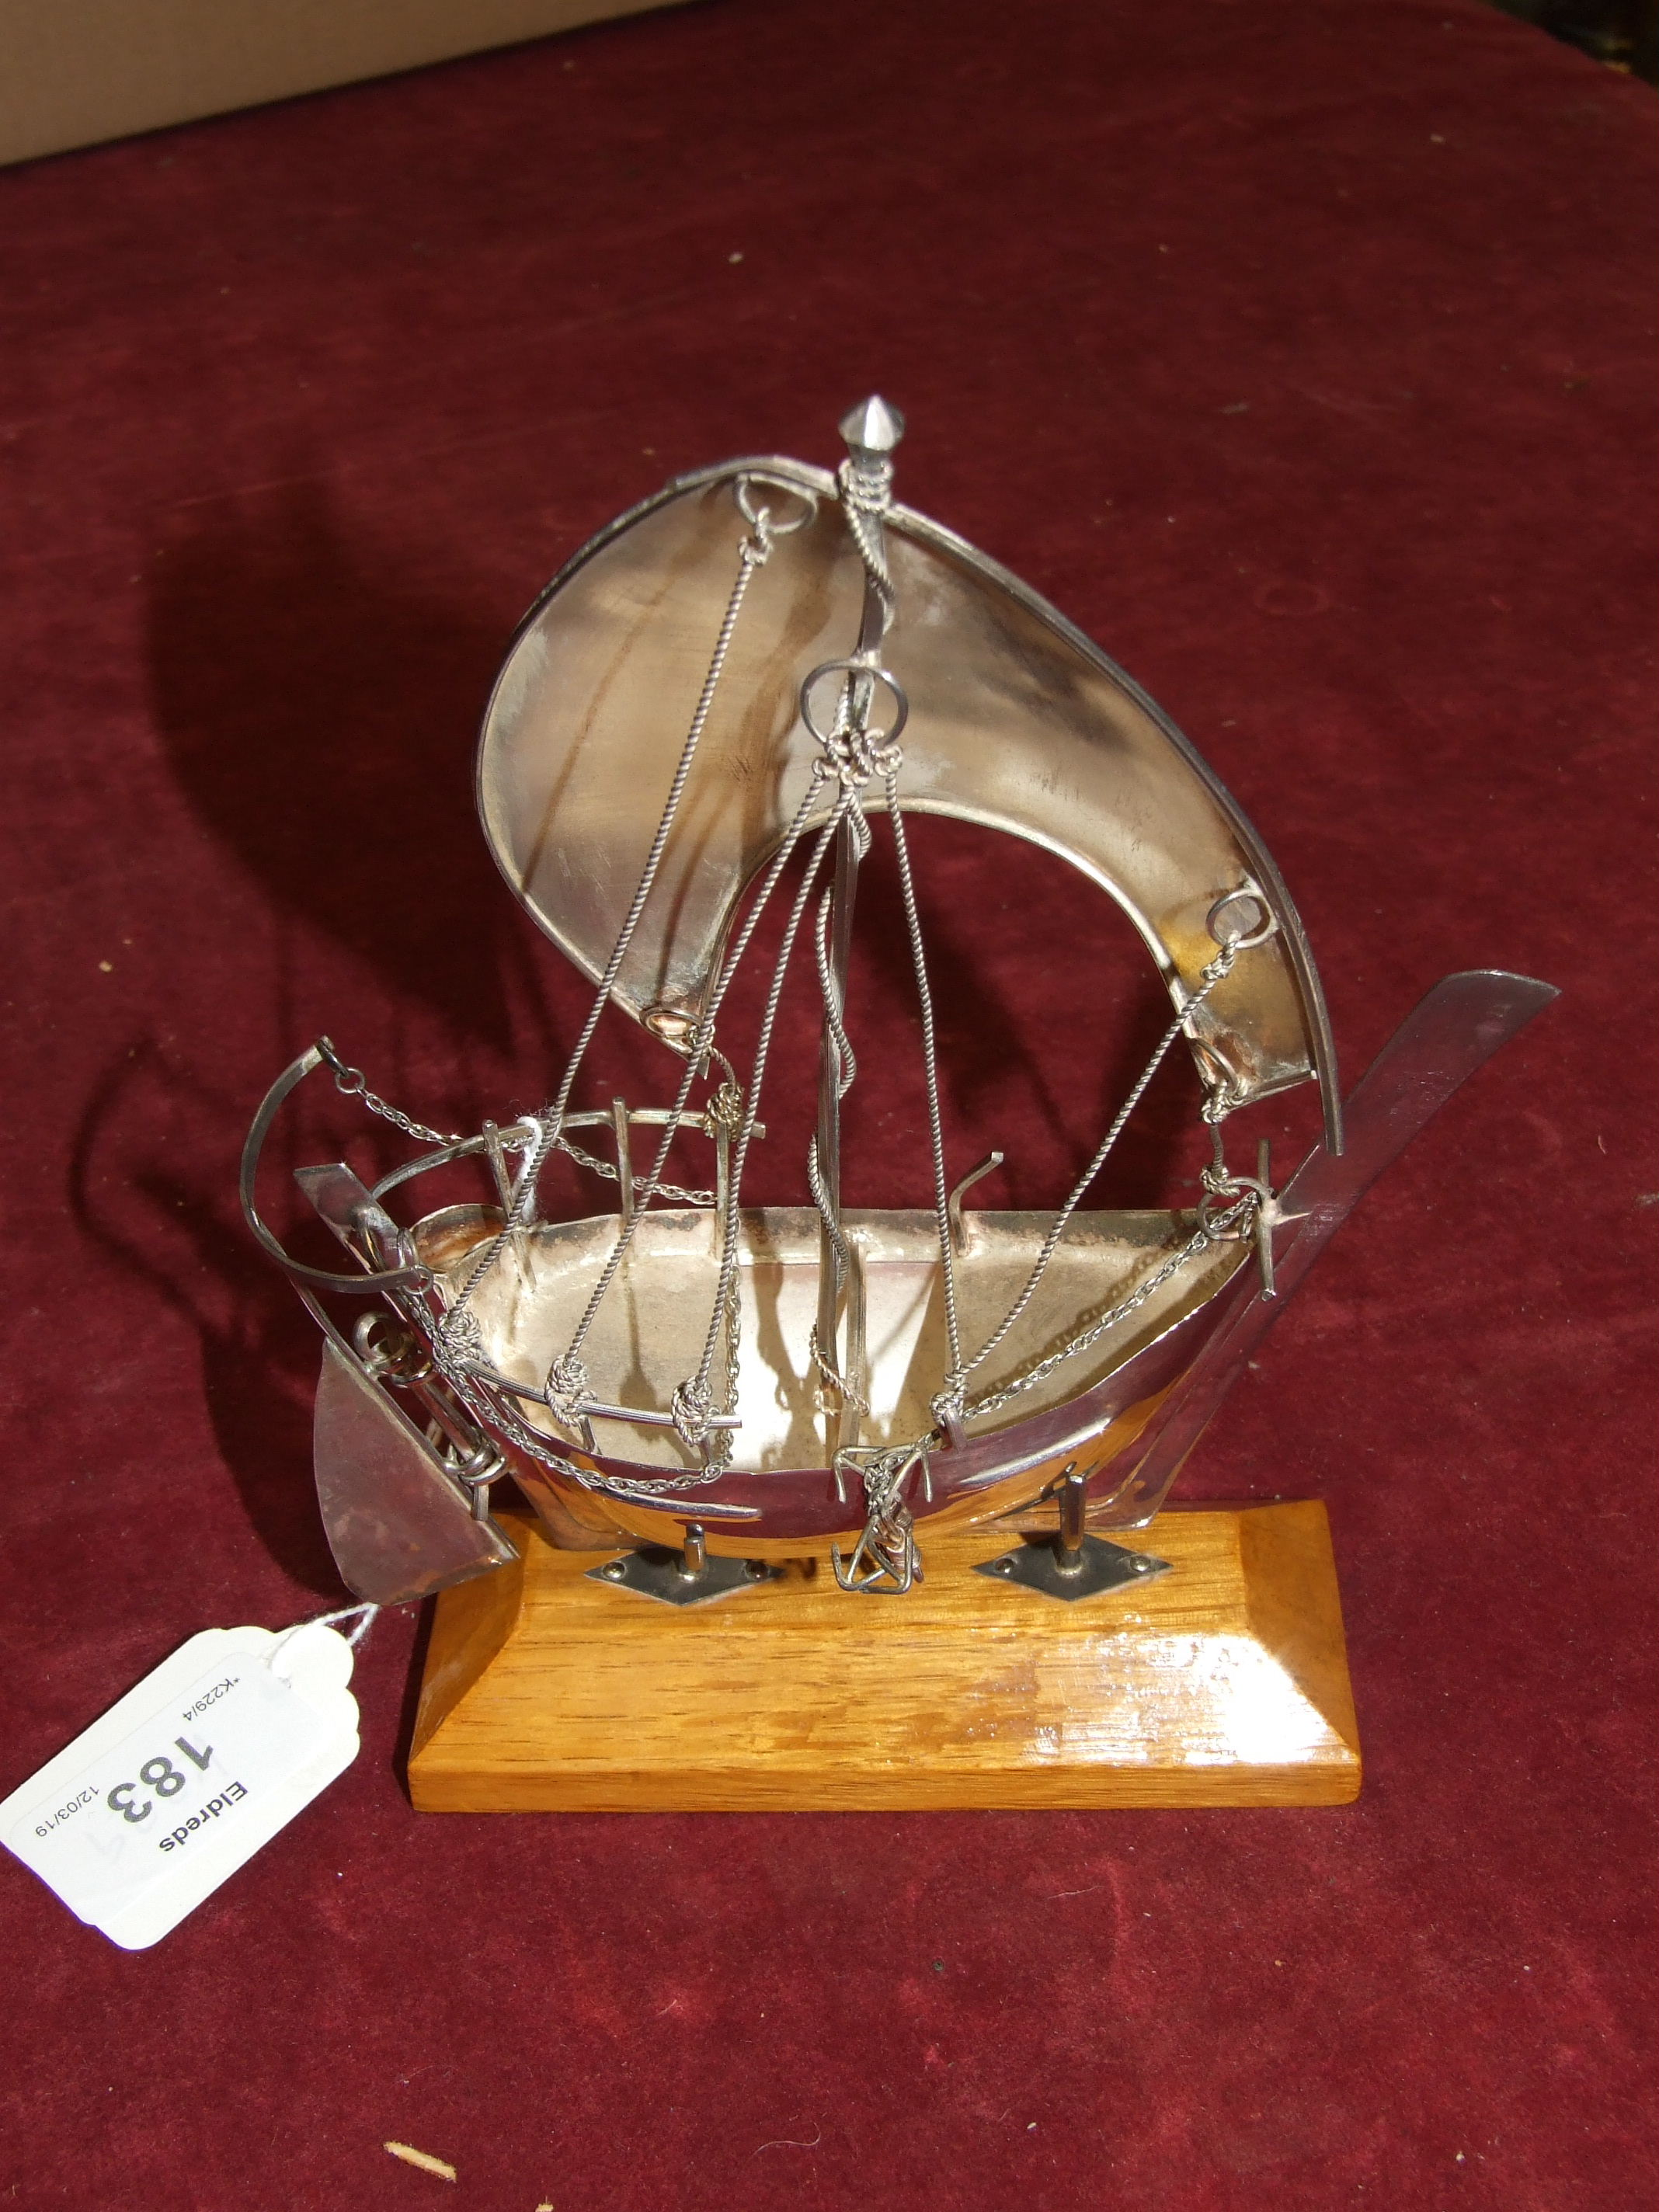 Lot 183 - A white metal model of a dhow, on wood stand, 18cm high, in fitted box.